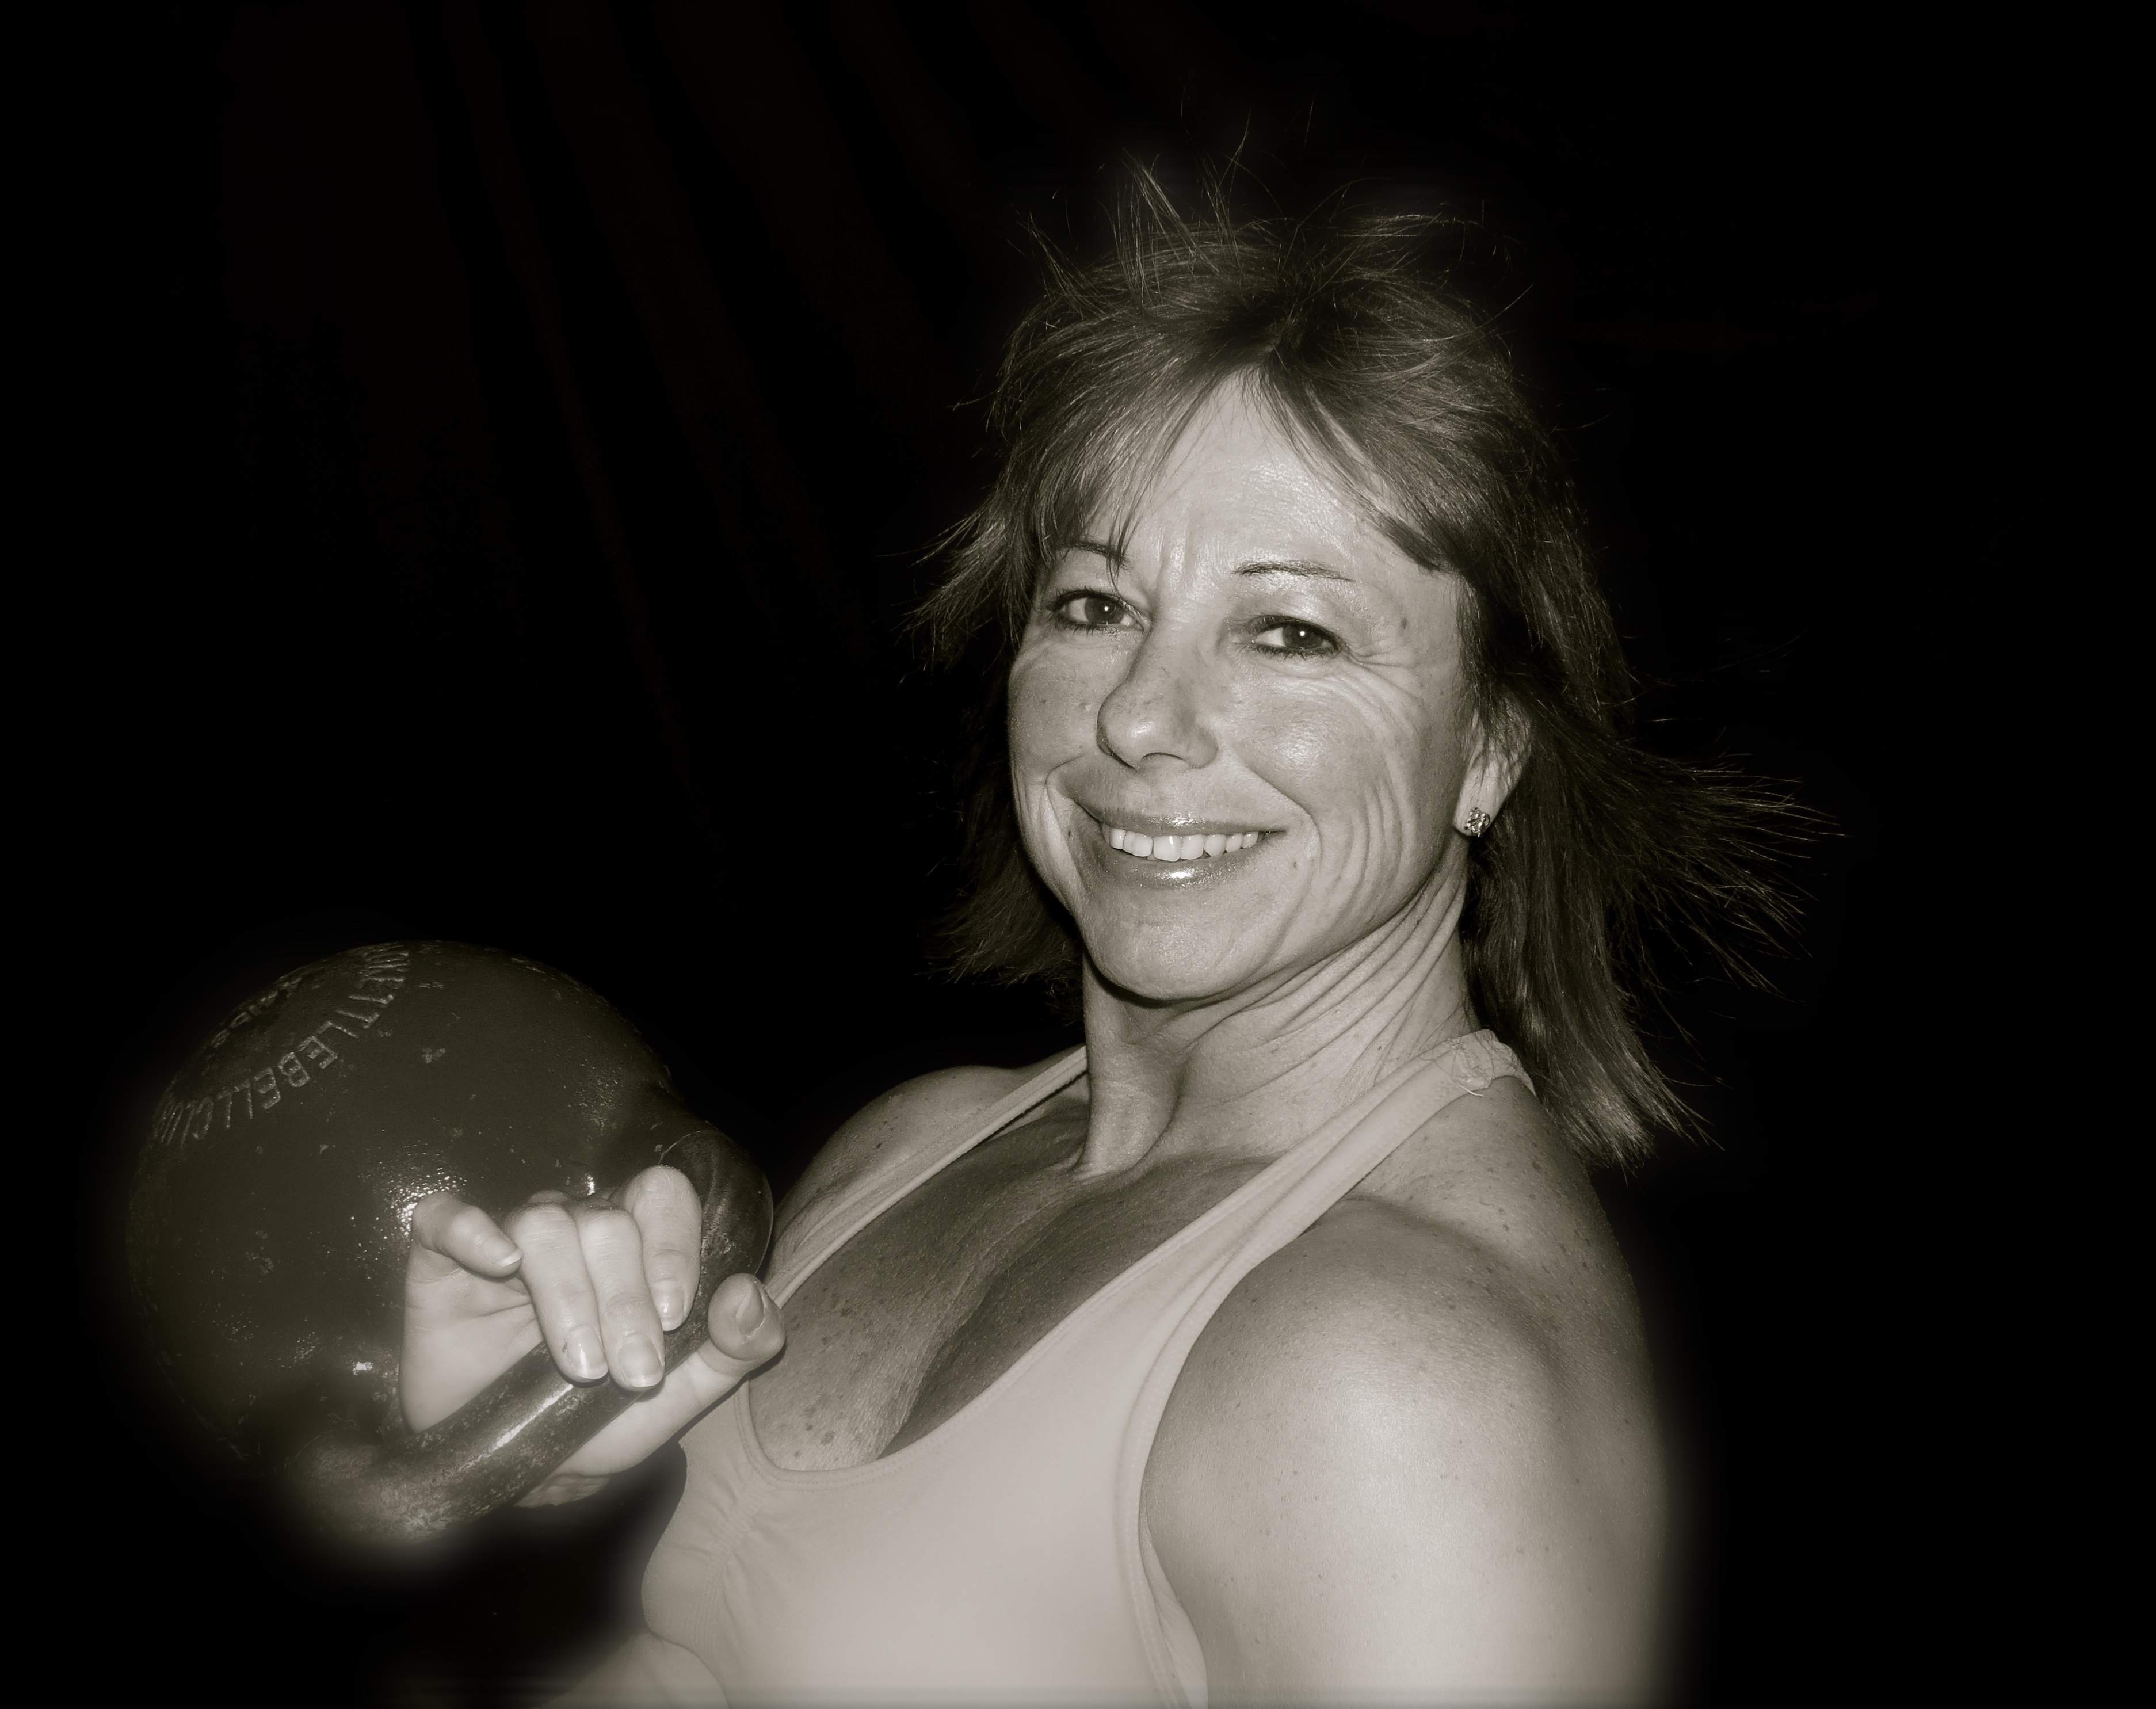 The Arnold's Last Year, 2014 Kettlebell Competition